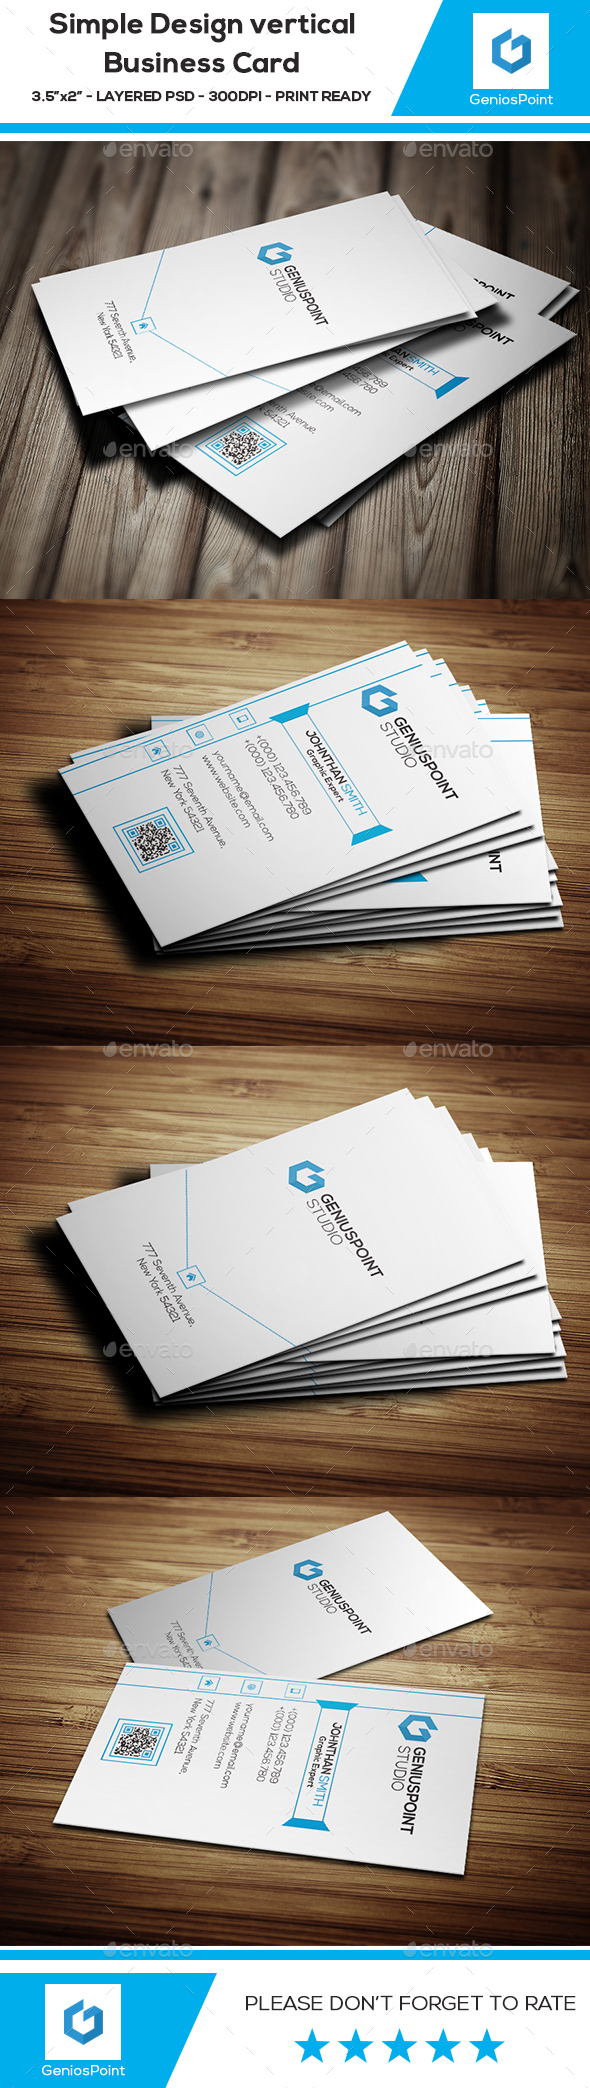 Simple Design Vertical Business Card - Business Cards Print Templates